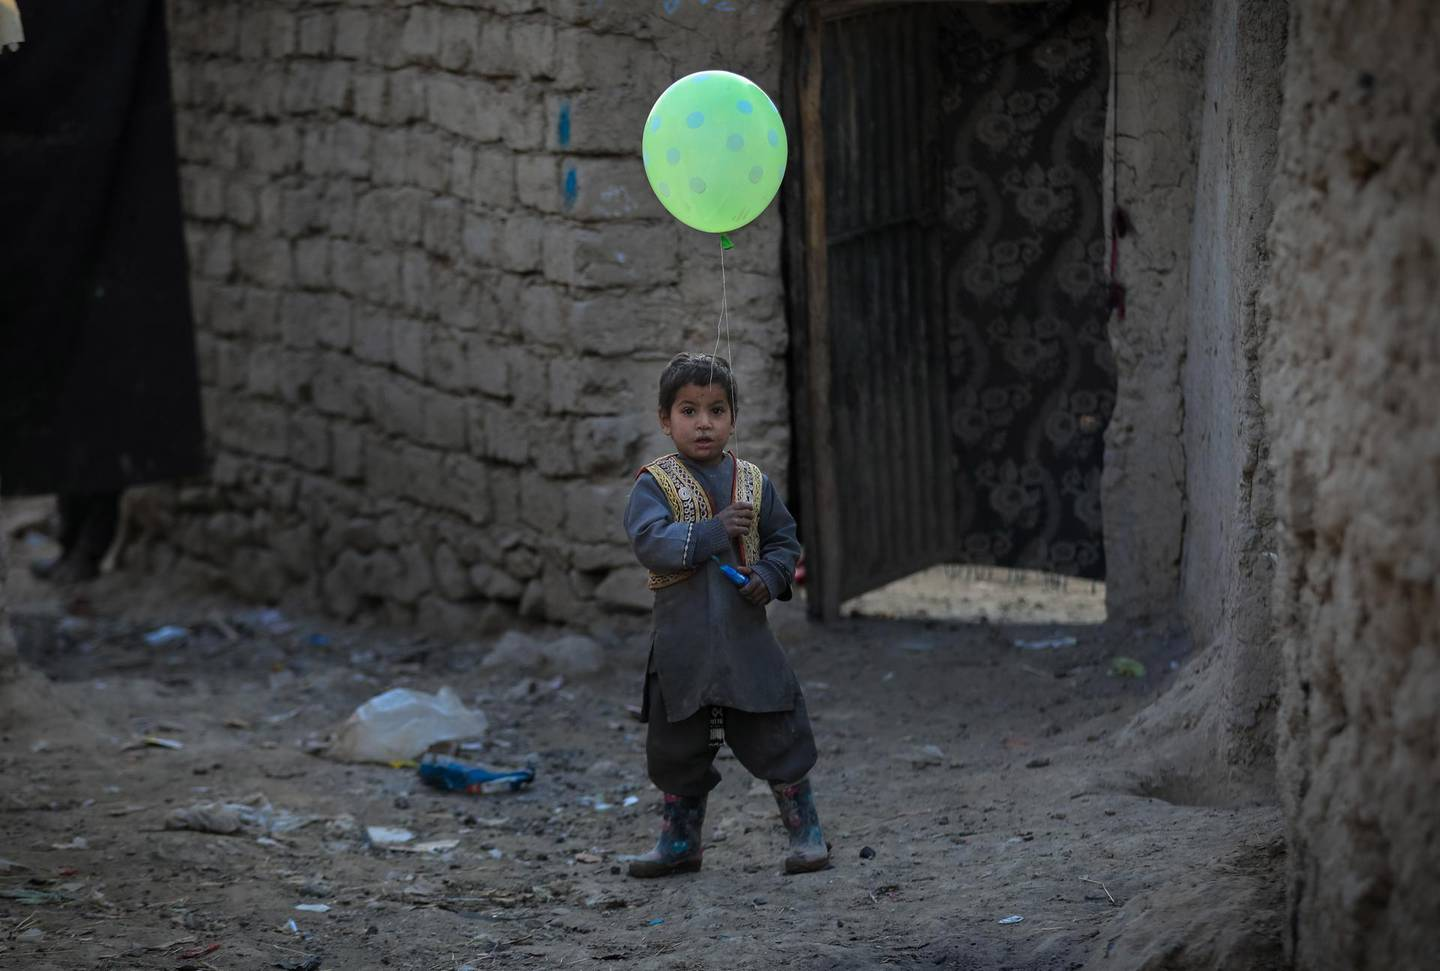 epa08948976 An Afghan internally displaced boy poses for a photograph as he holds a balloon near to a temporary shelter at an Internally Displaced Persons (IDPs) camp on the outskirts of Kabul, Afghanistan on 19 January 2021. Over 18.4 million Afghans including 9.7 million children in Afghanistan desperately need life-saving support, said Save the Children in a statement on 19 January, therefore the NGO is calling for billions of dollars in aid to cope with the challenges.  The NGO says a combination of conflict, poverty, and the Coronavirus pandemic continue to have devastating impacts on the population and continue to fuel humanitarian needs in Afghanistan.  EPA/HEDAYATULLAH AMID